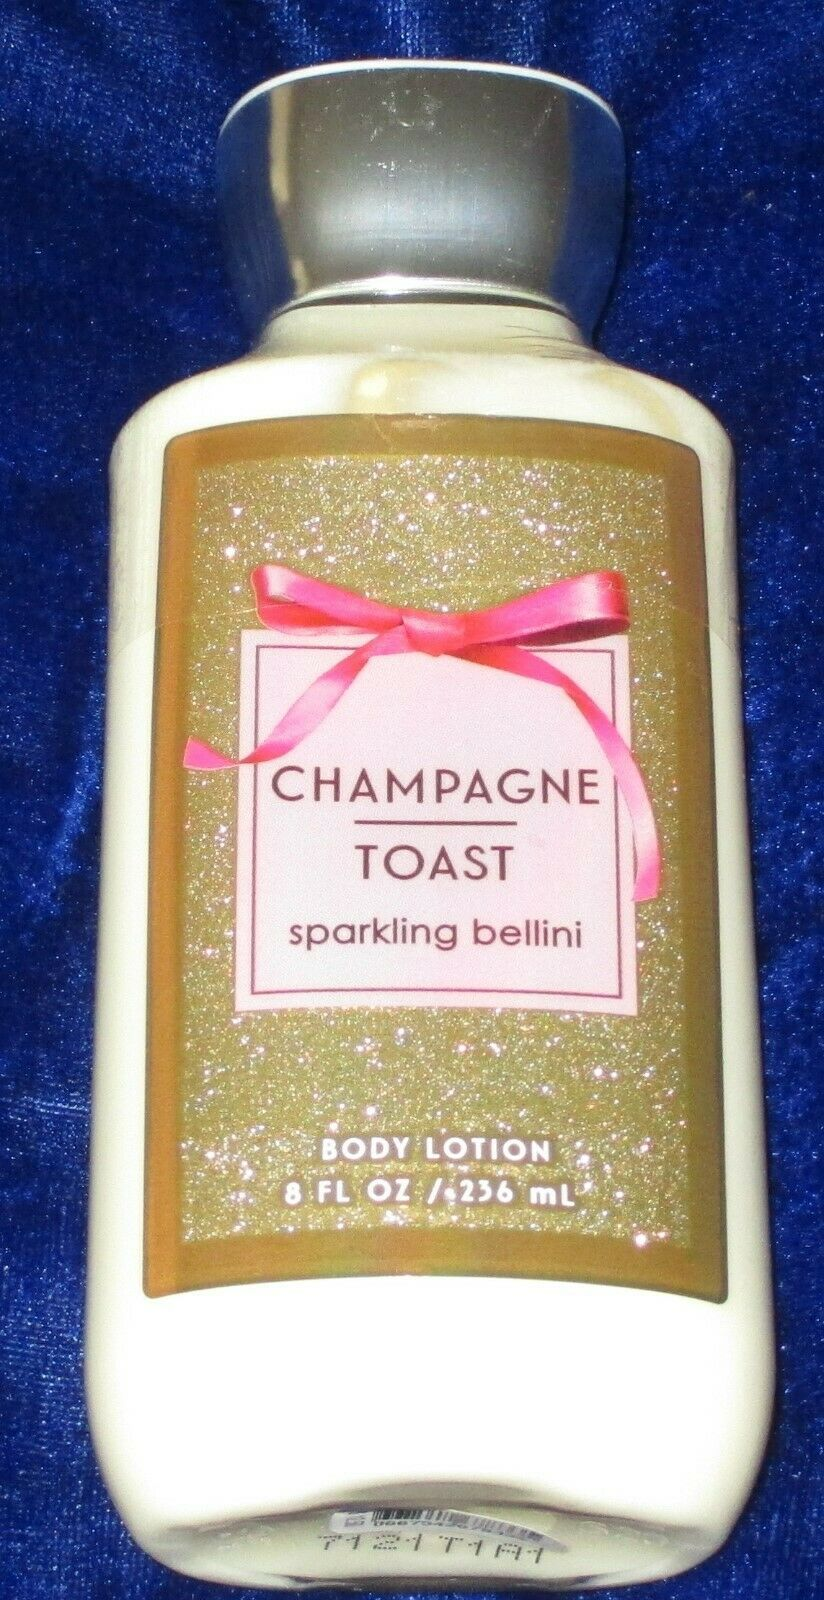 Primary image for Bath & Body Works Champagne Toast Sparkling Bellini Body Lotion